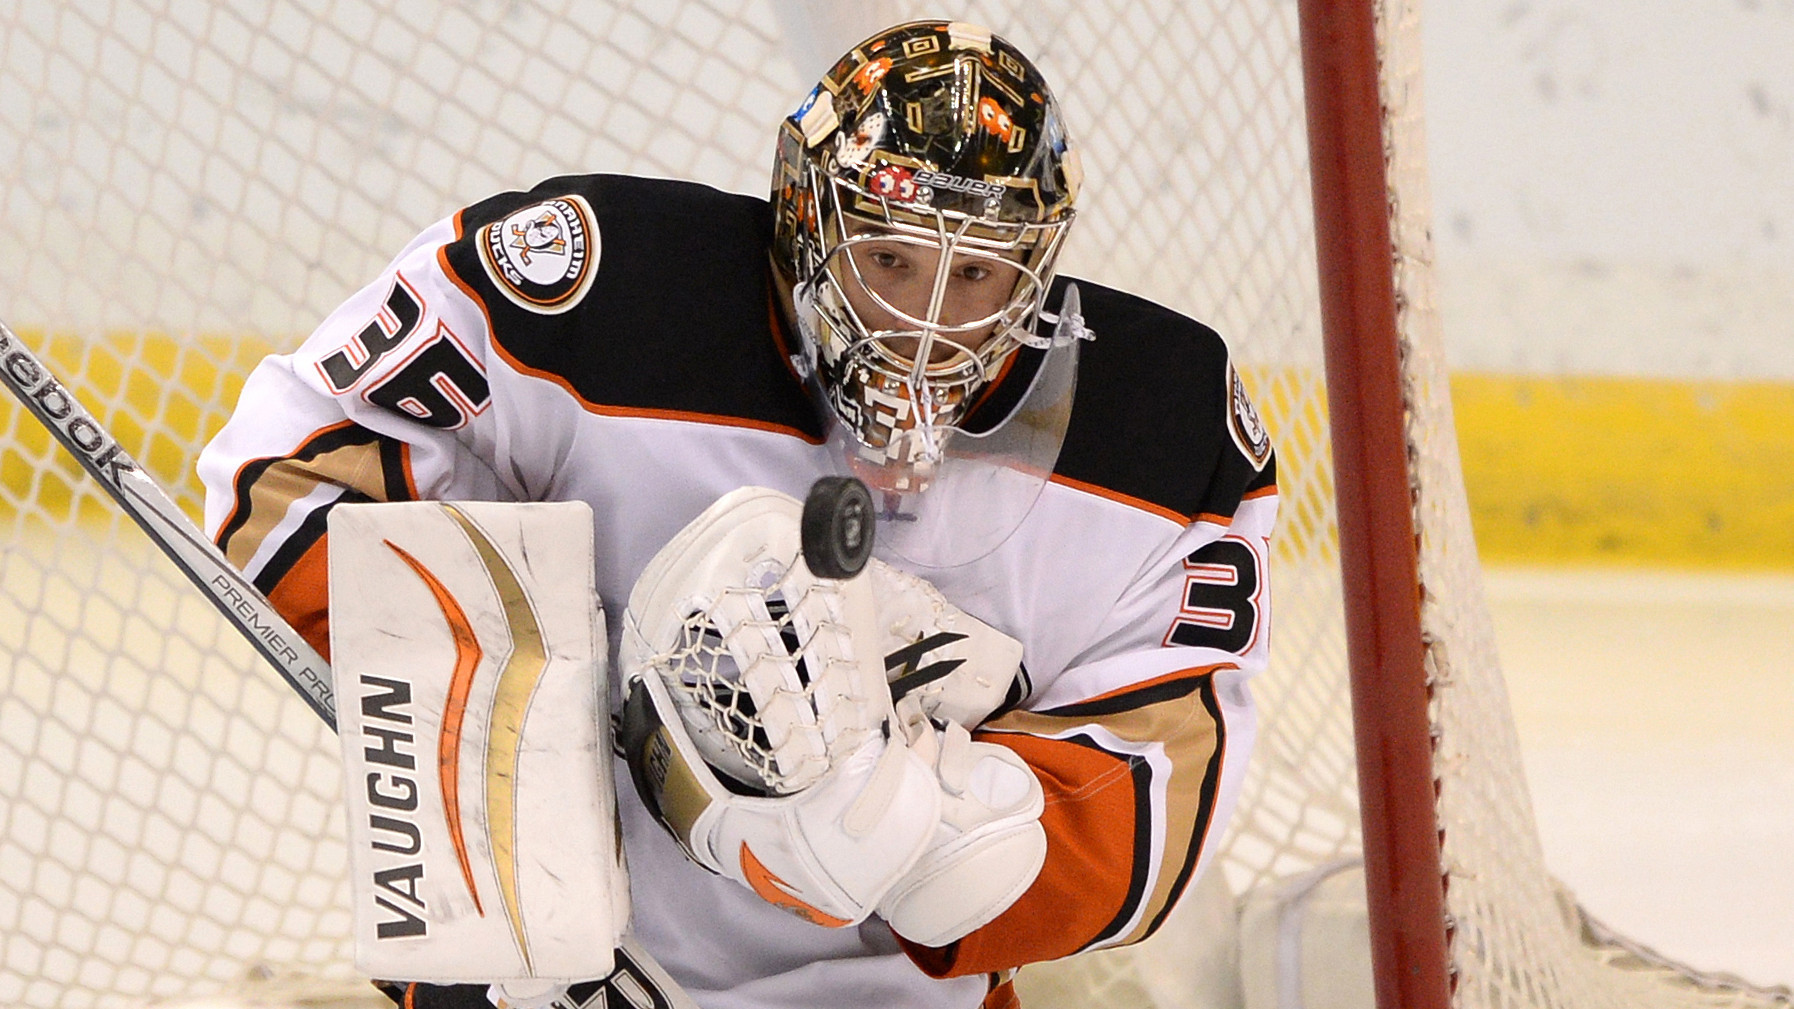 Ducks Have Decisions To Make On Goalies Ilya Bryzgalov, John Gibson